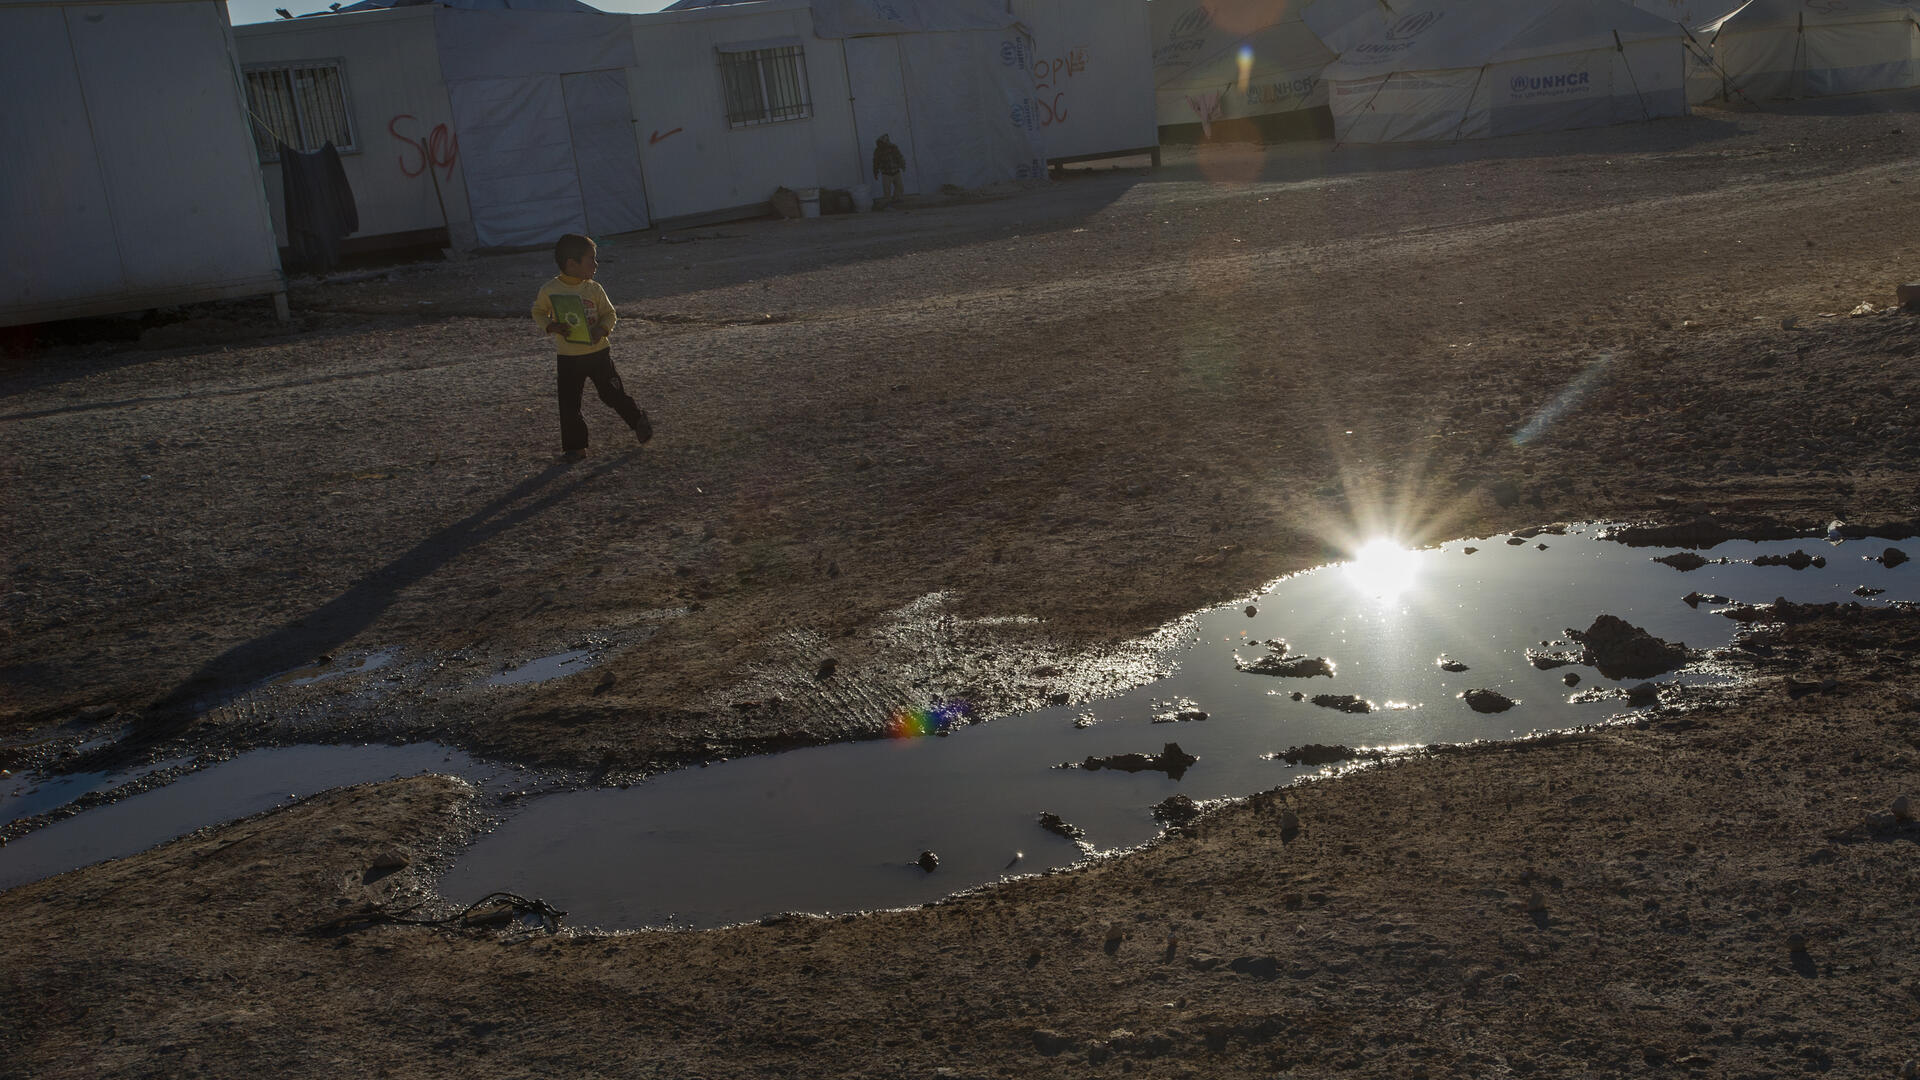 A boy plays near a puddle of waste water at the Zaatari refugee camp in northern Jordan.